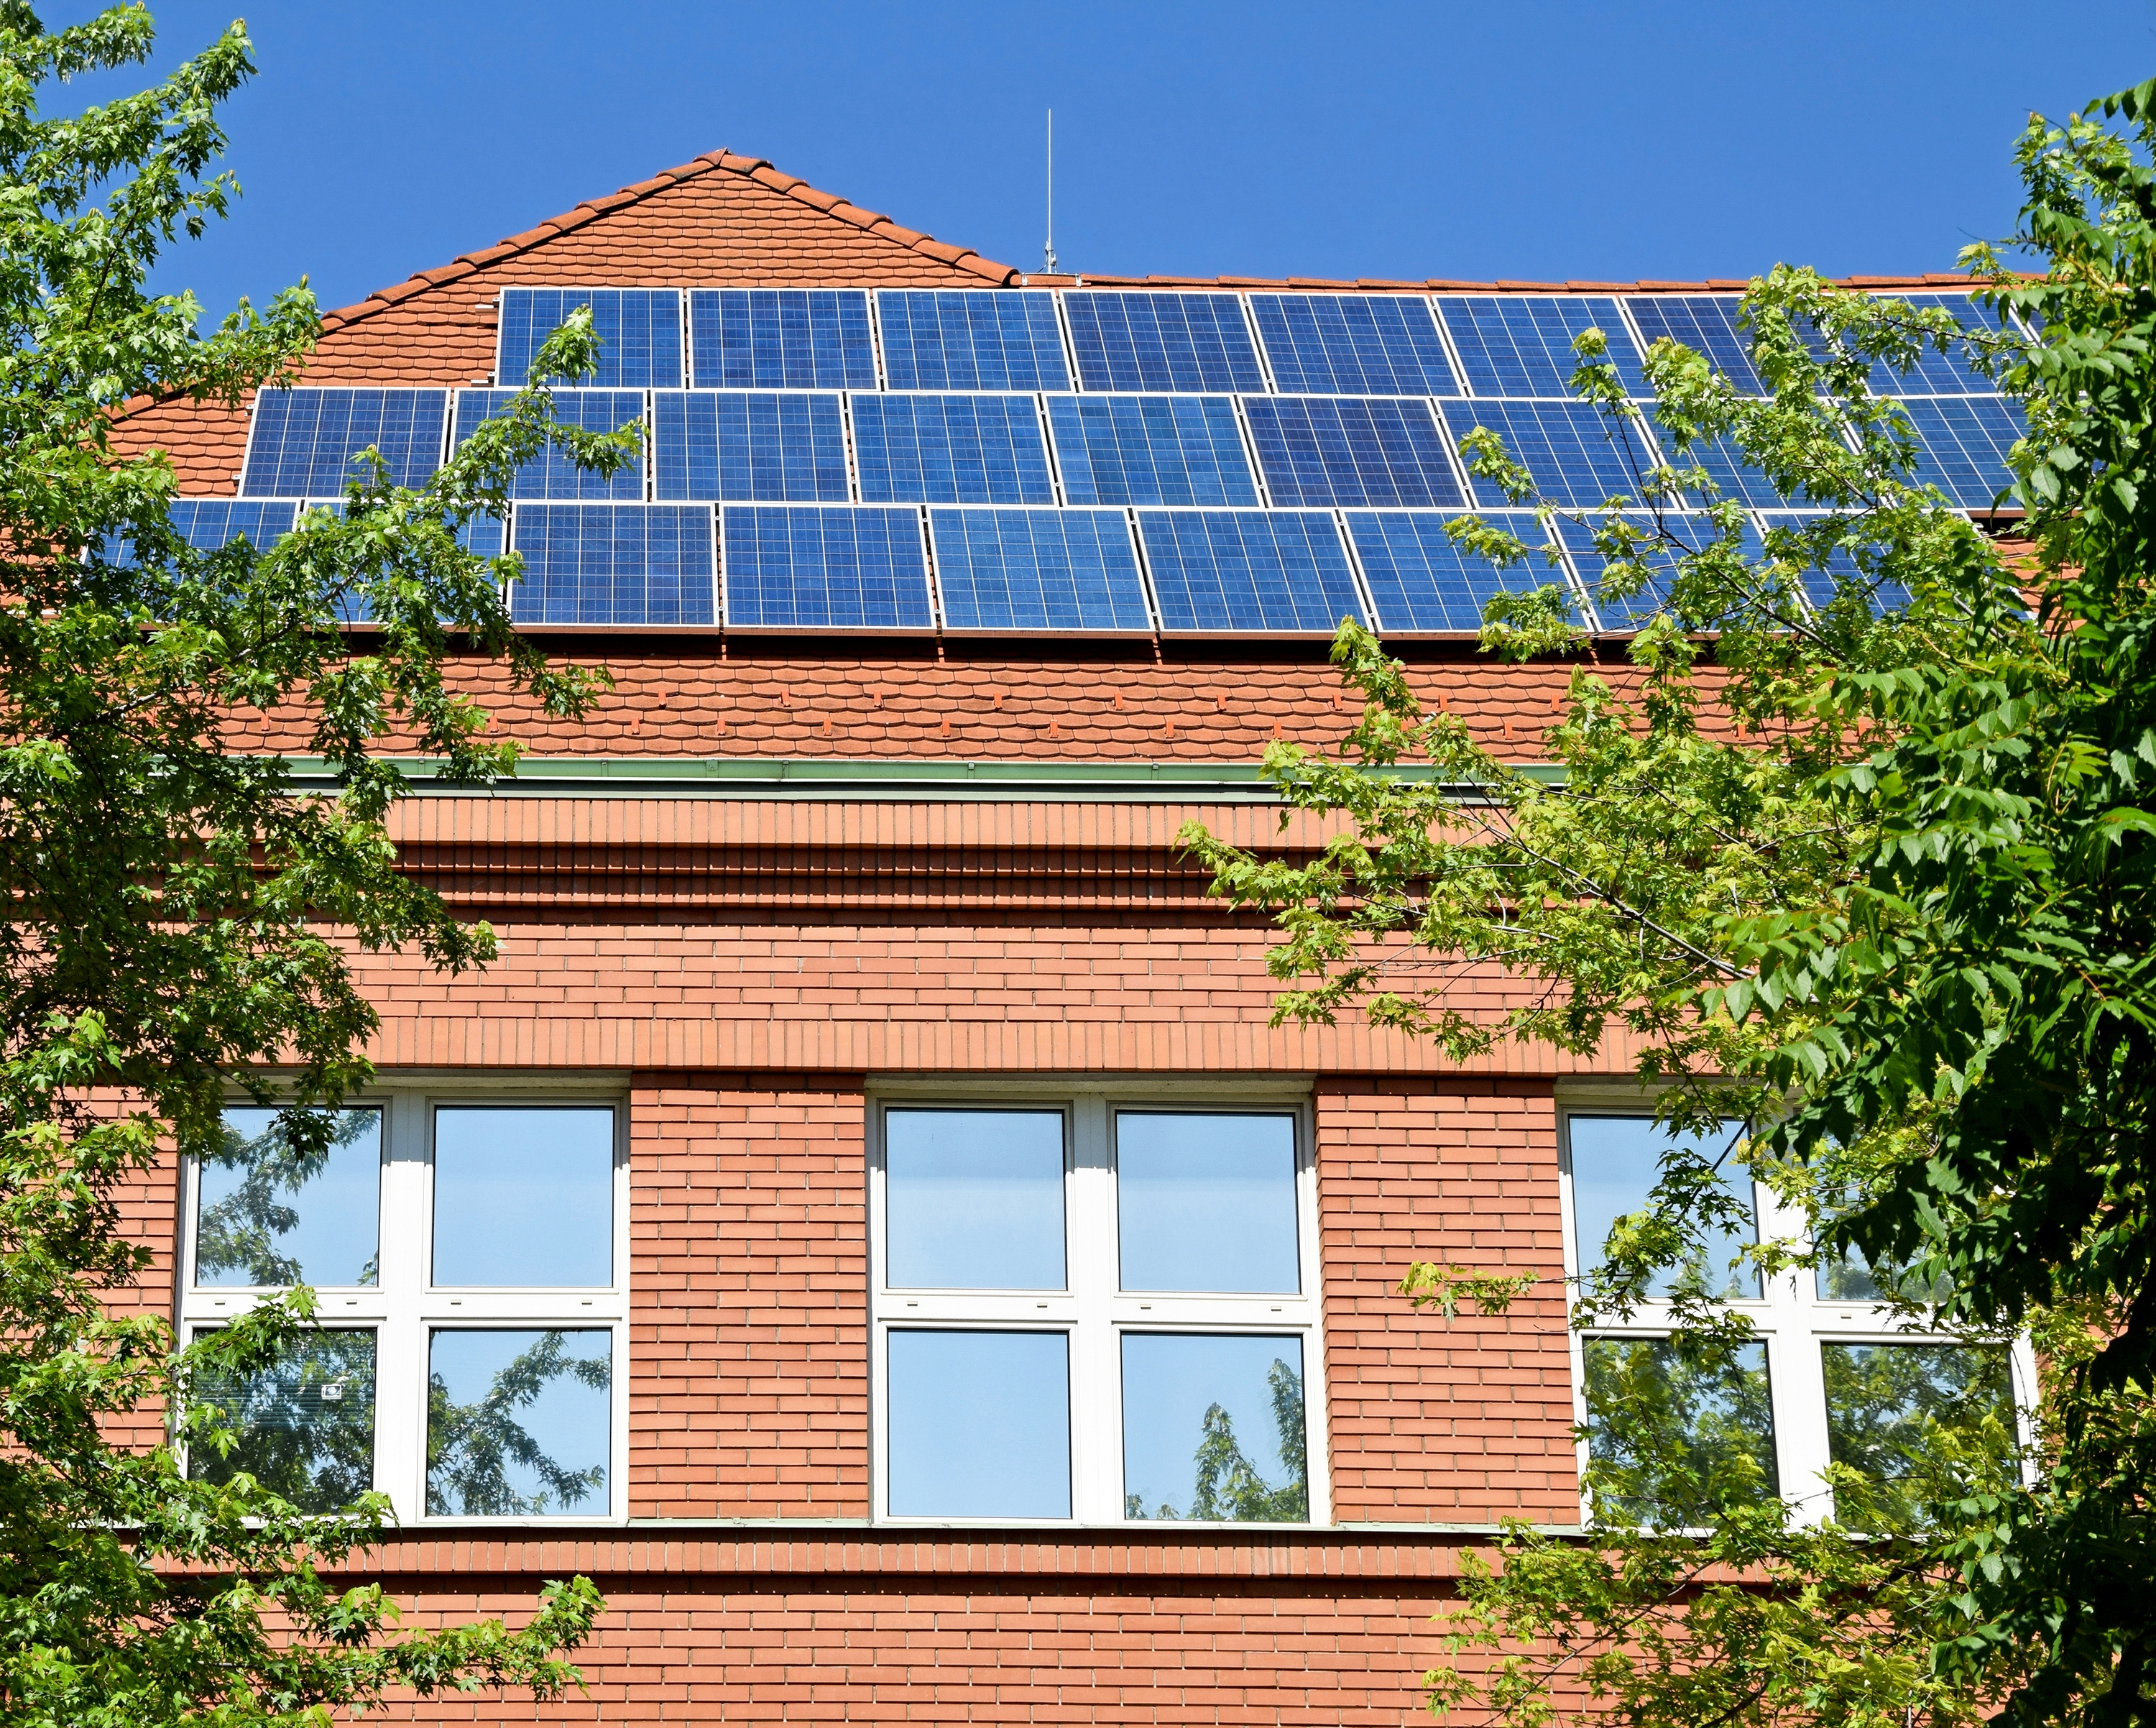 K12 stockphoto school building roof solar panels